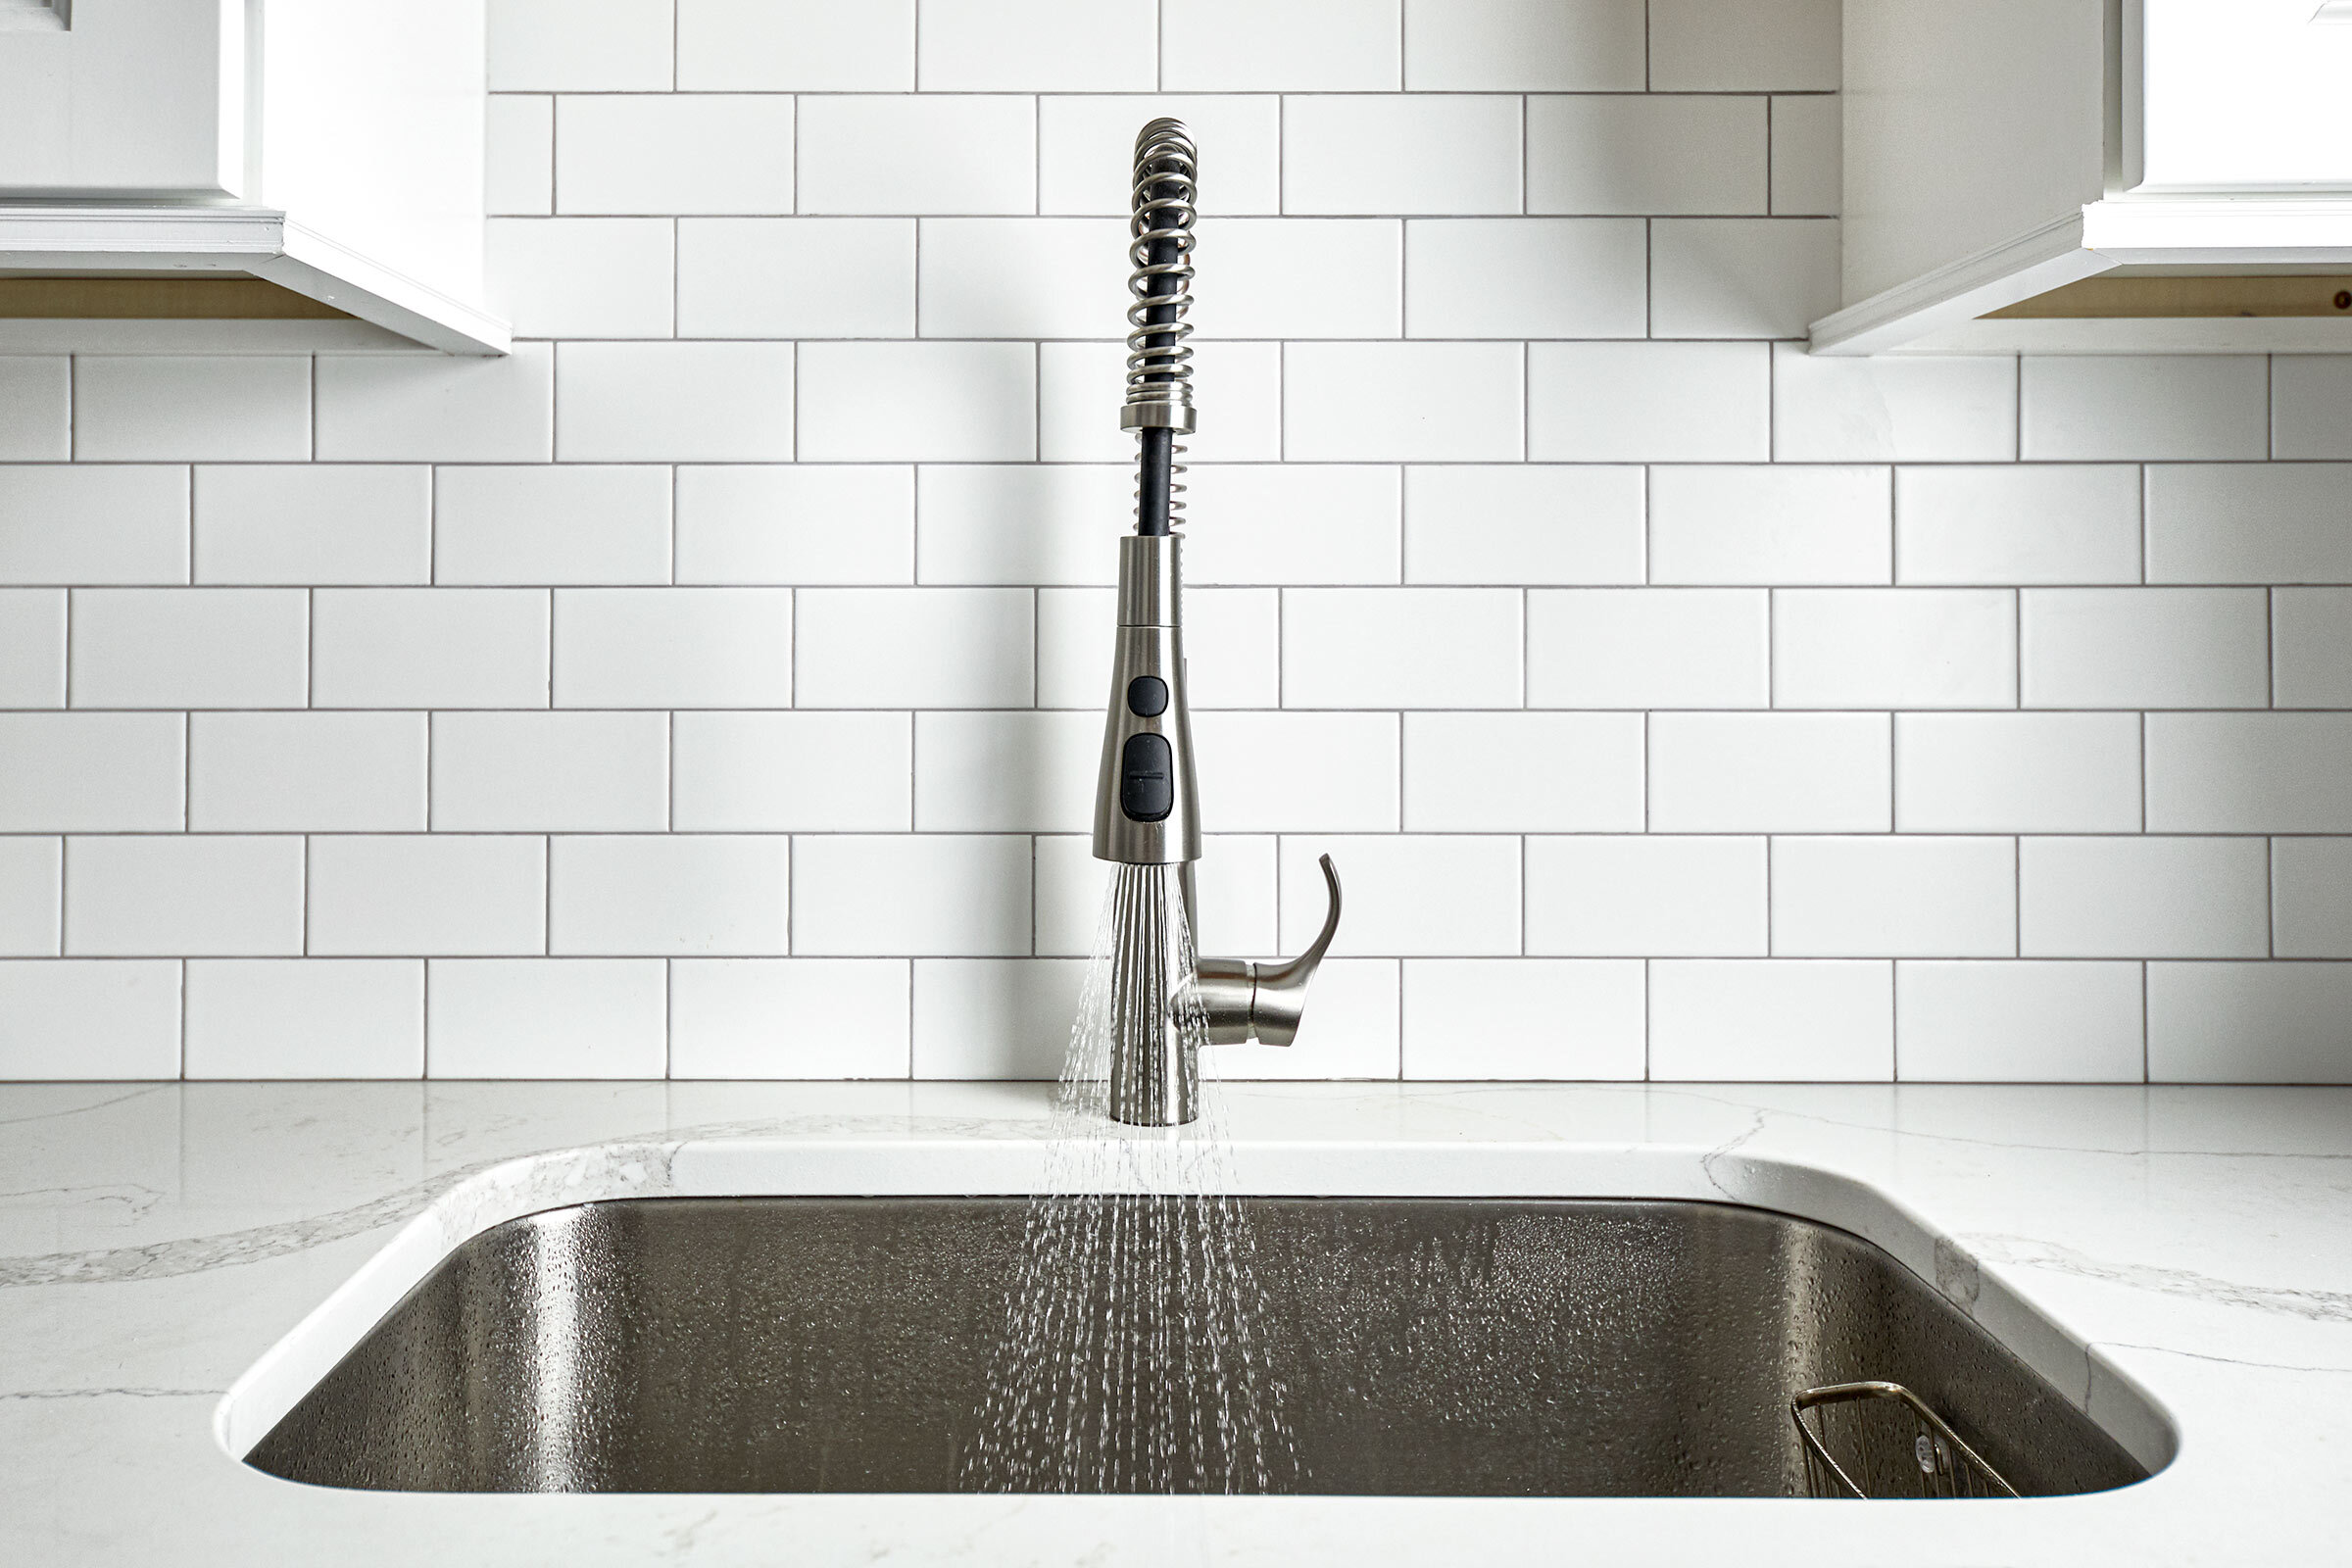 thompson-fine-home-renovations-kitchen-subway-tile-faucet.jpg